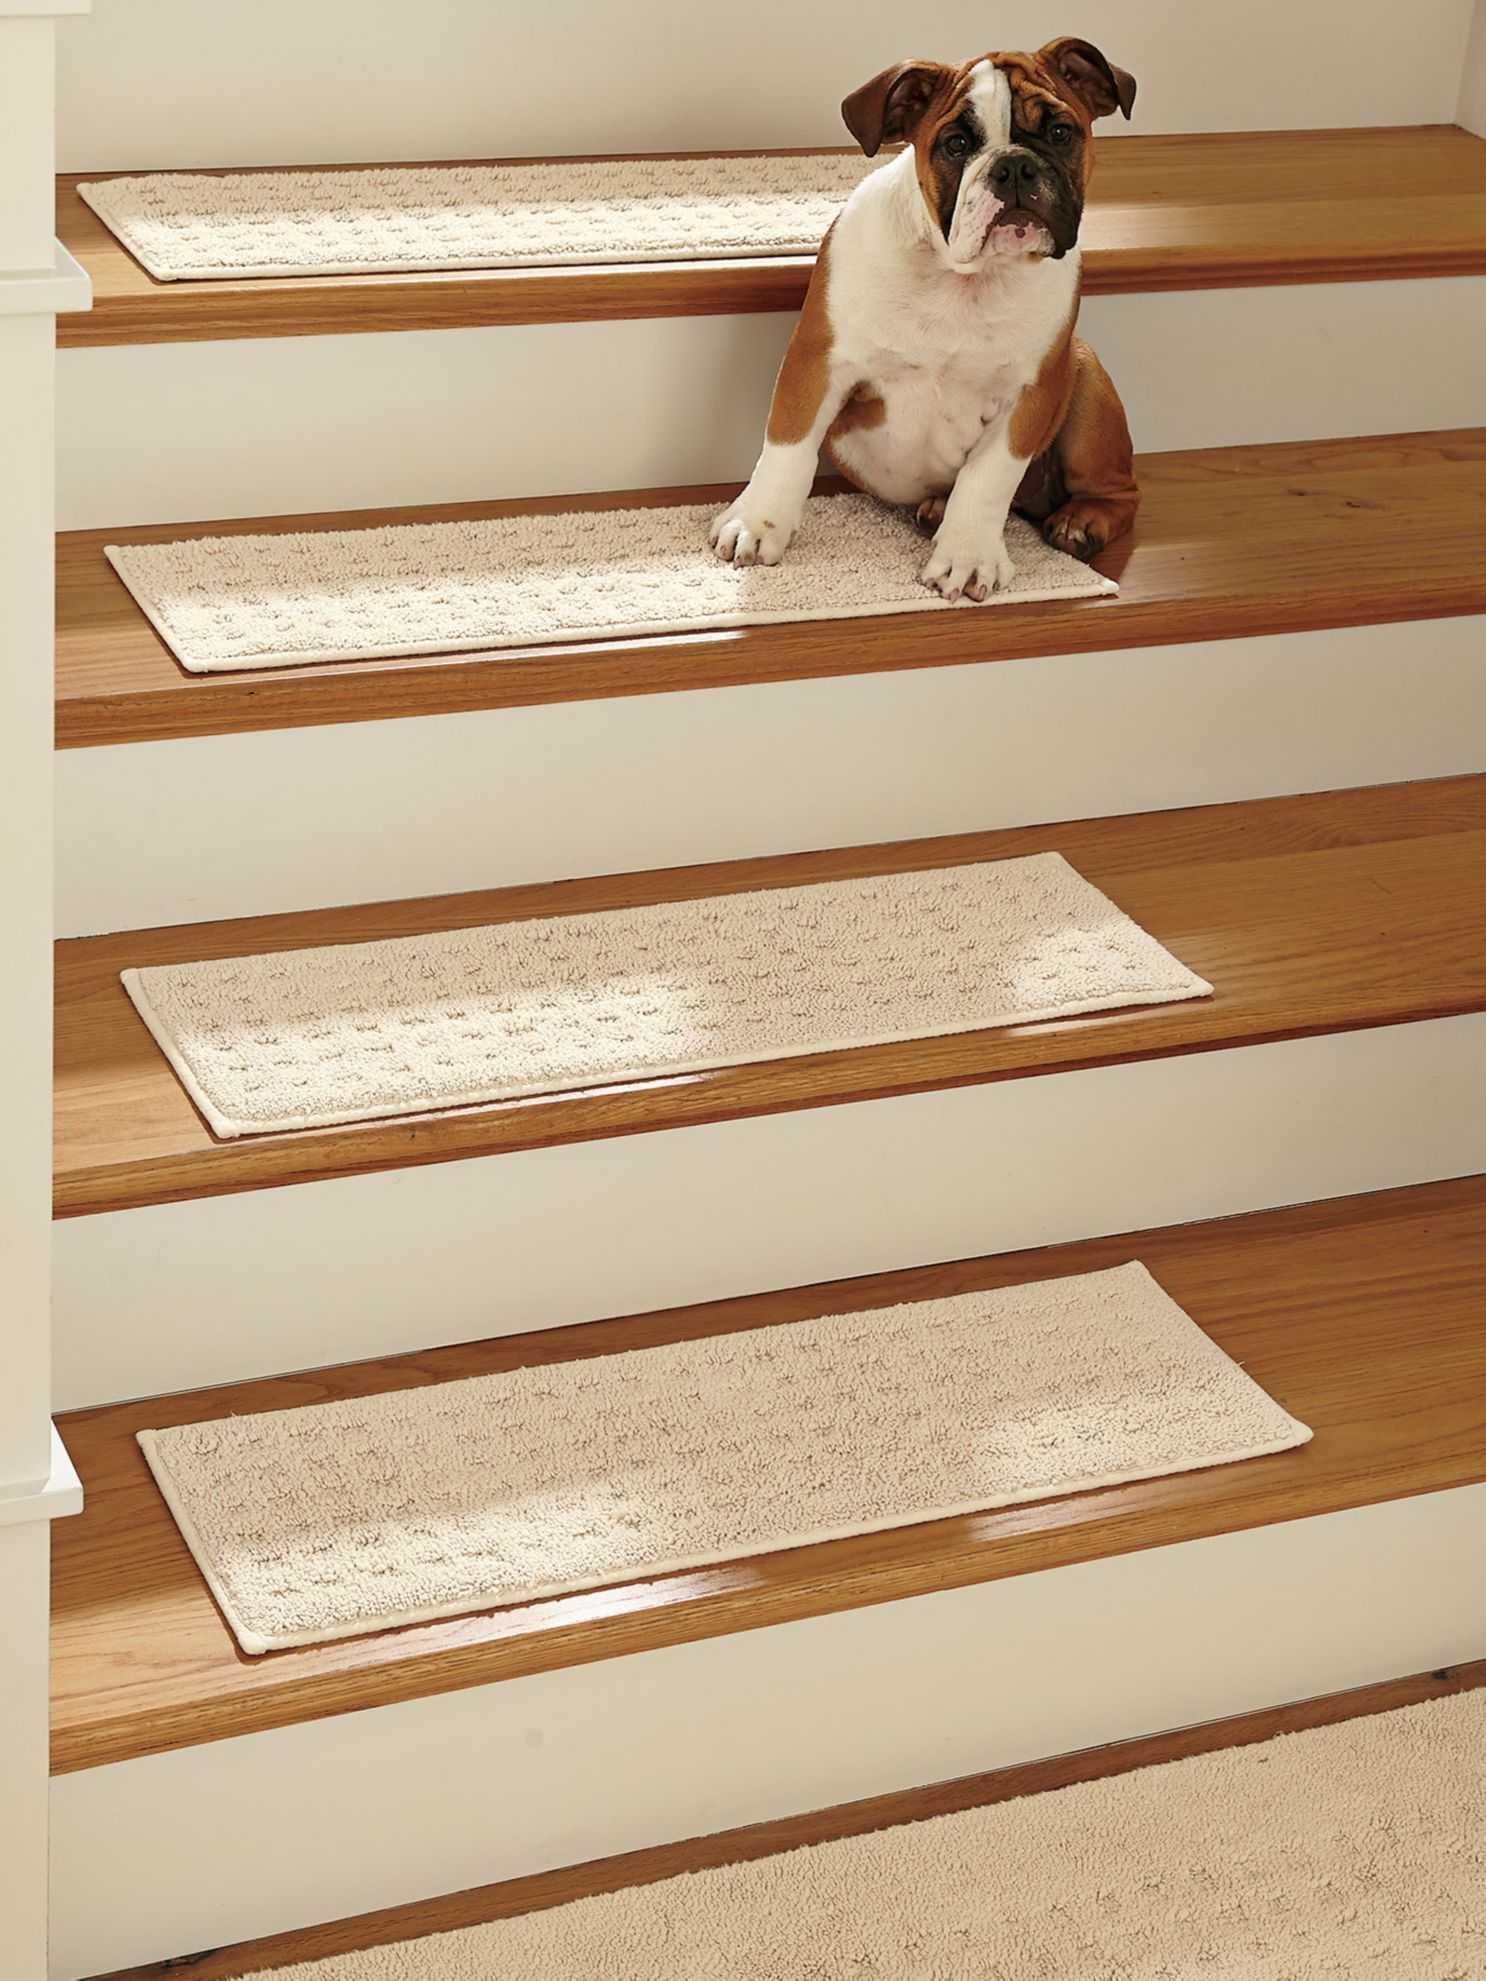 Protect Wooden Stairs From Wear With Vista Stair Treads From Solutions.  Shop Pure Cotton Stair Treads For Practical Comfort In A Machine Washable  Design!